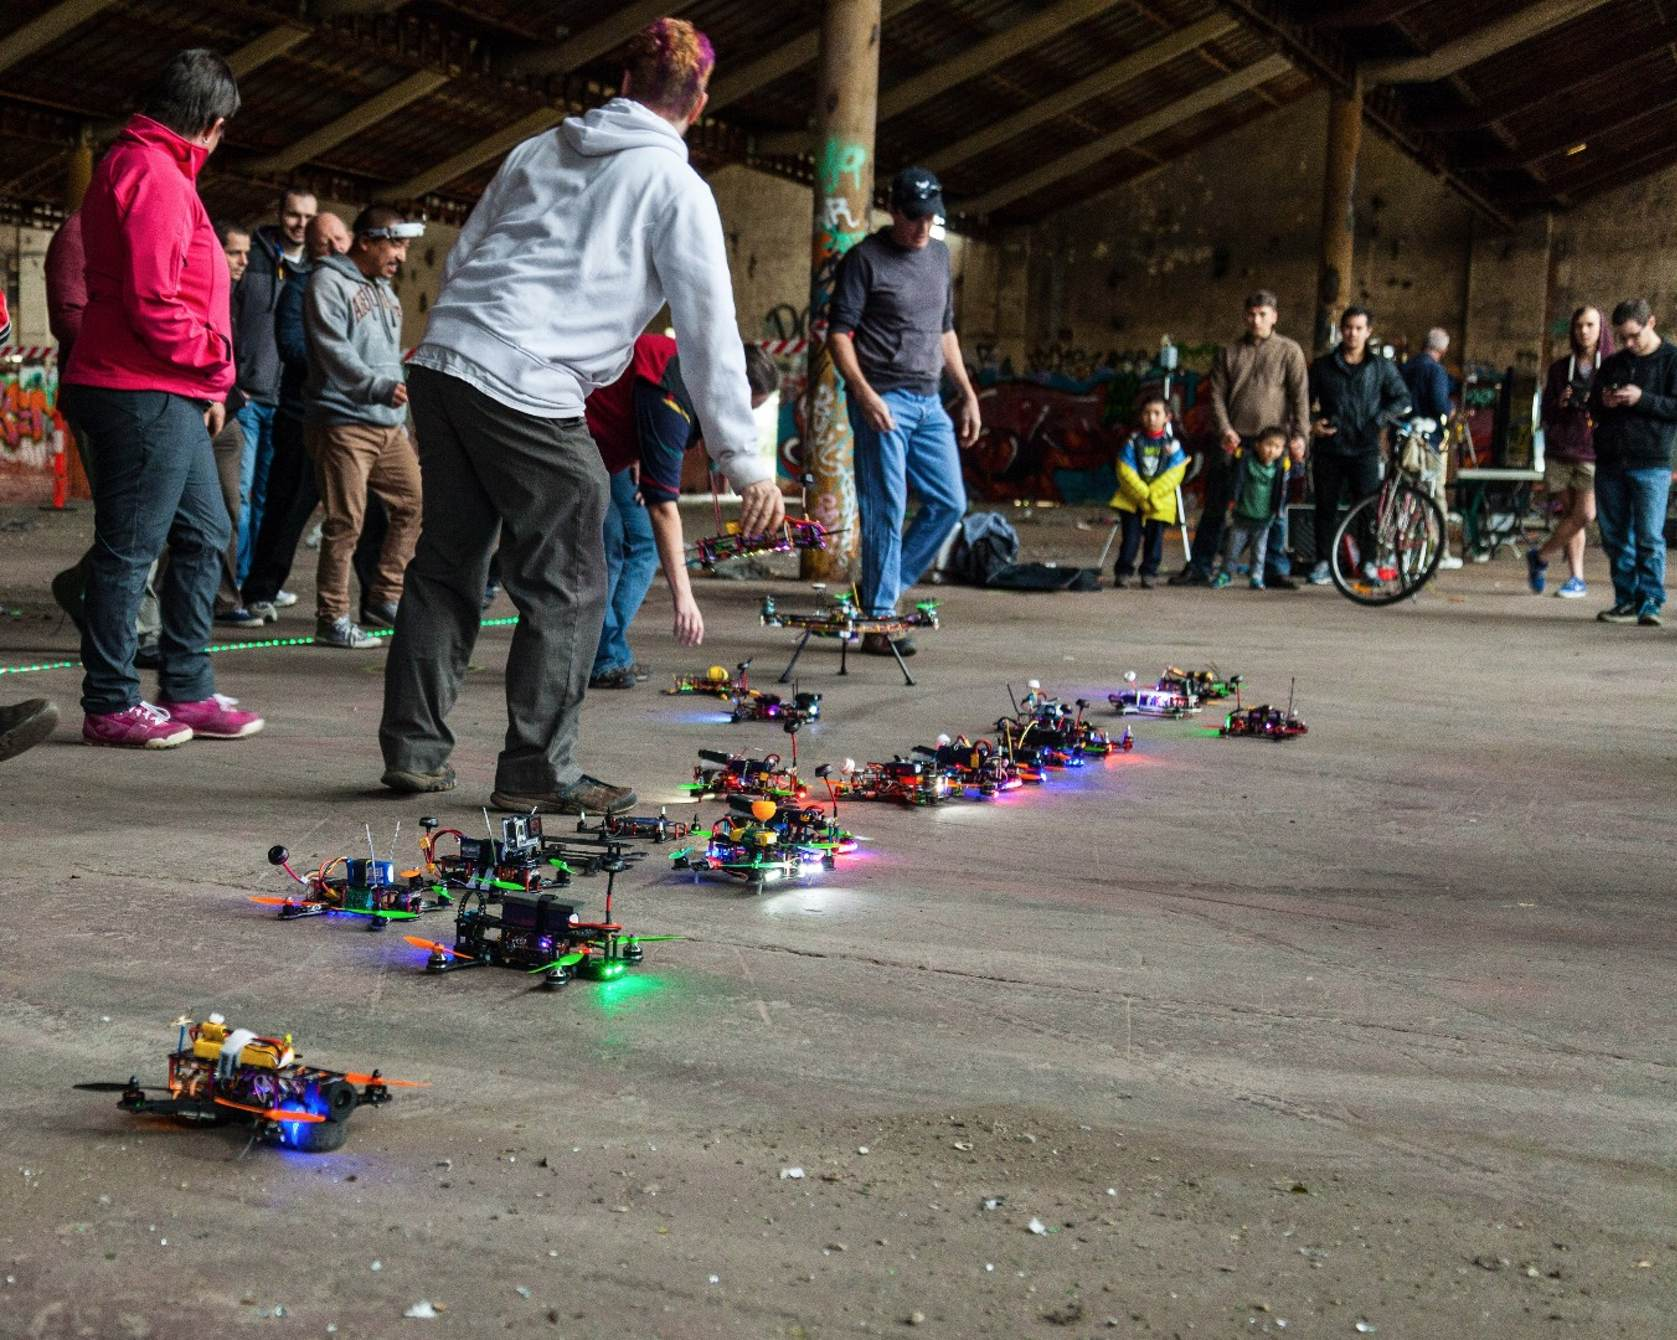 Drone racing started underground, in abandoned buildings.